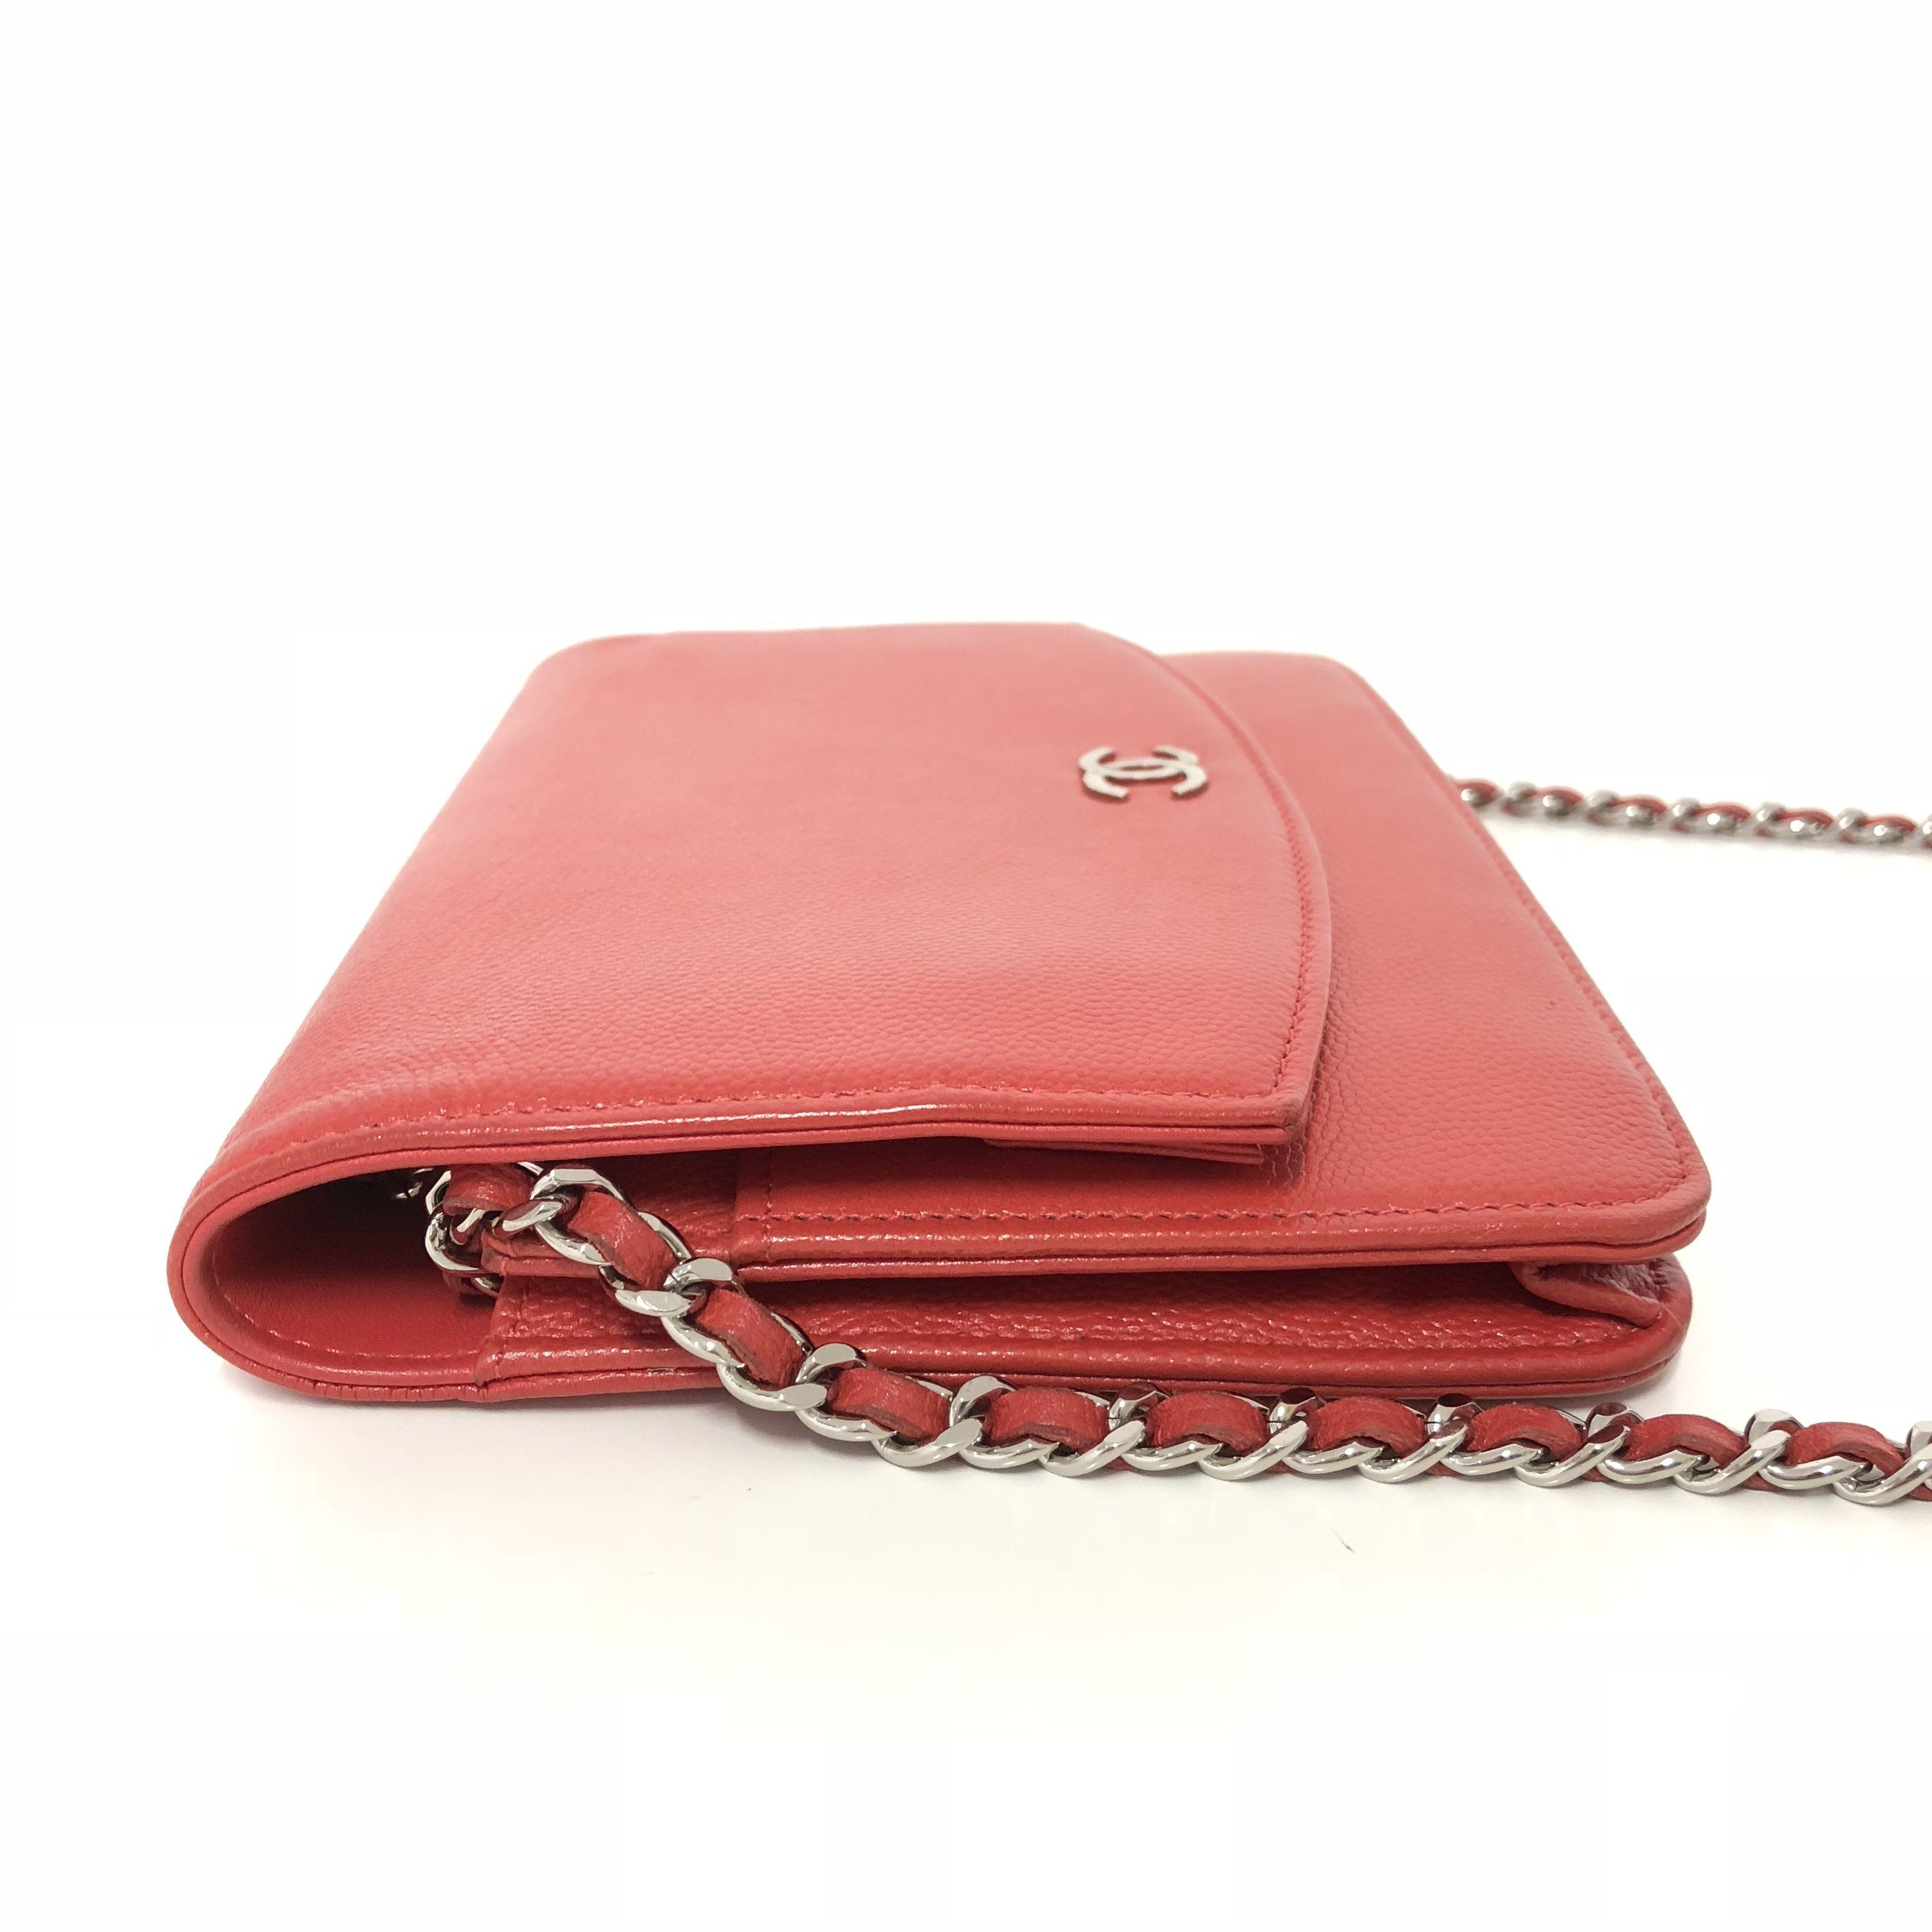 8d7f7065bfd2 Chanel Caviar Wallet On Chain Red Crossbody Bag – Garderobe